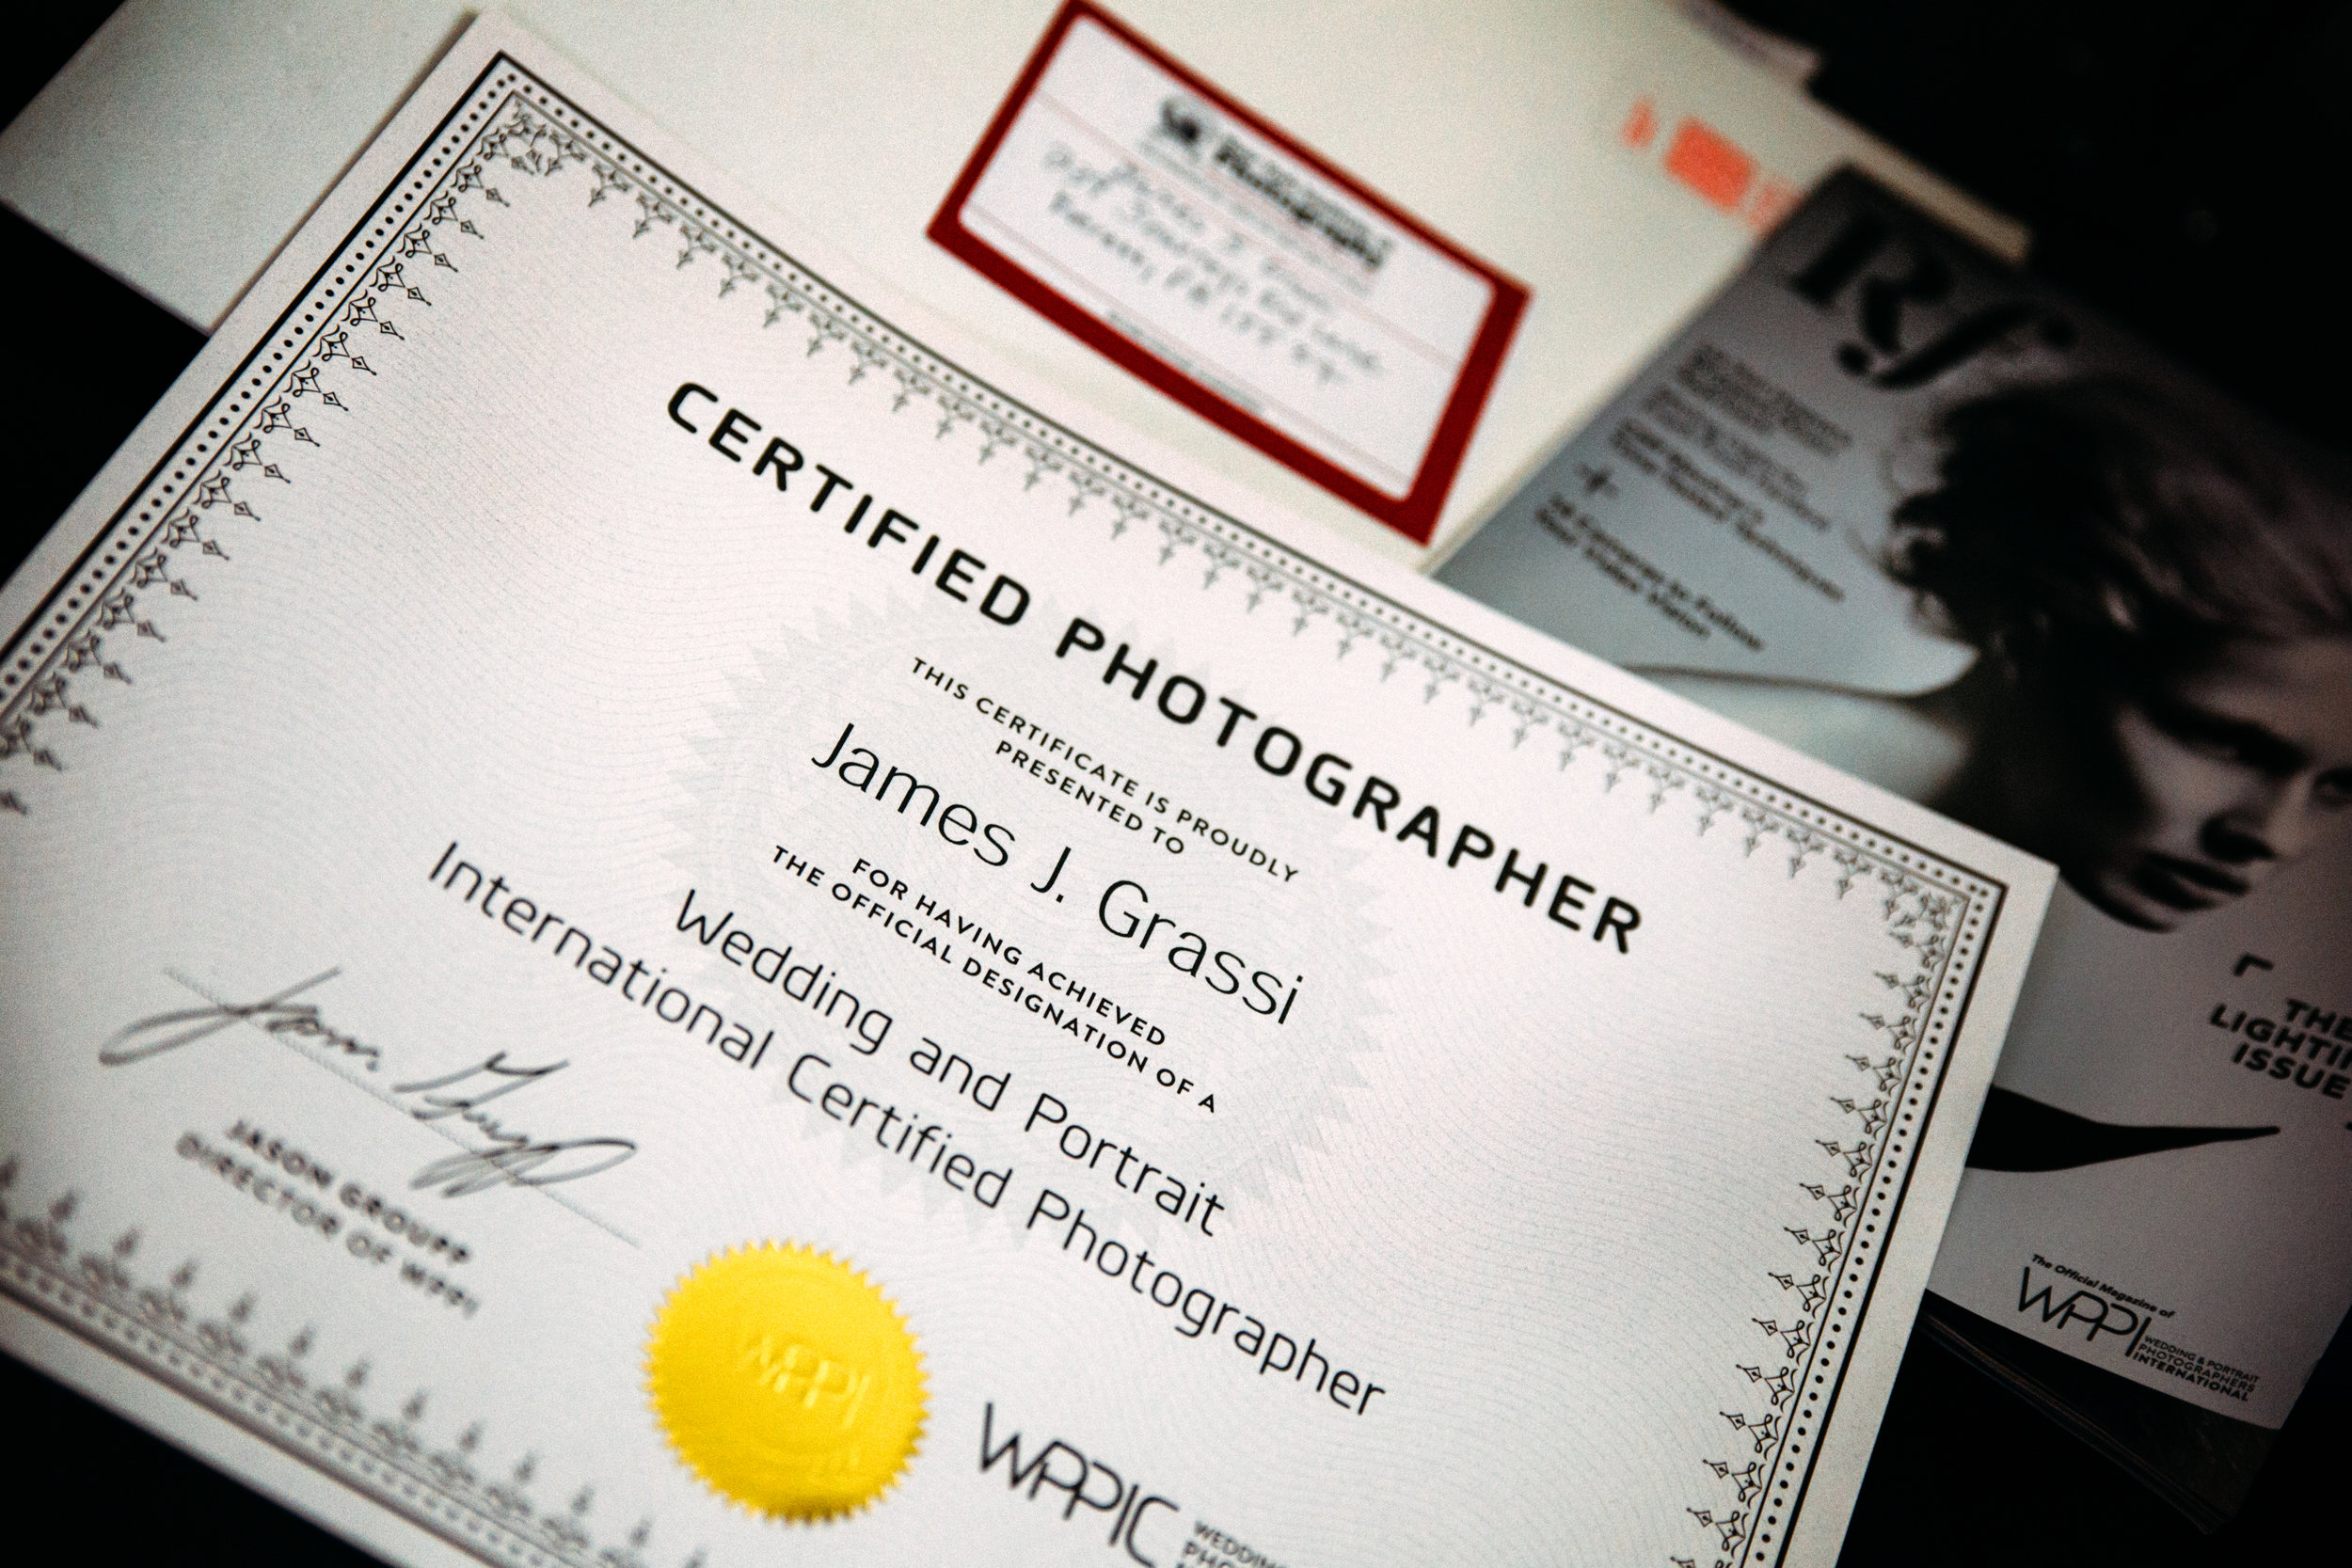 - James J. Grassi PhotographyWPPI Certified Professional Photographer239 Journey's End Lane Everett, PA 15537jamesjgrassi@yahoo.com